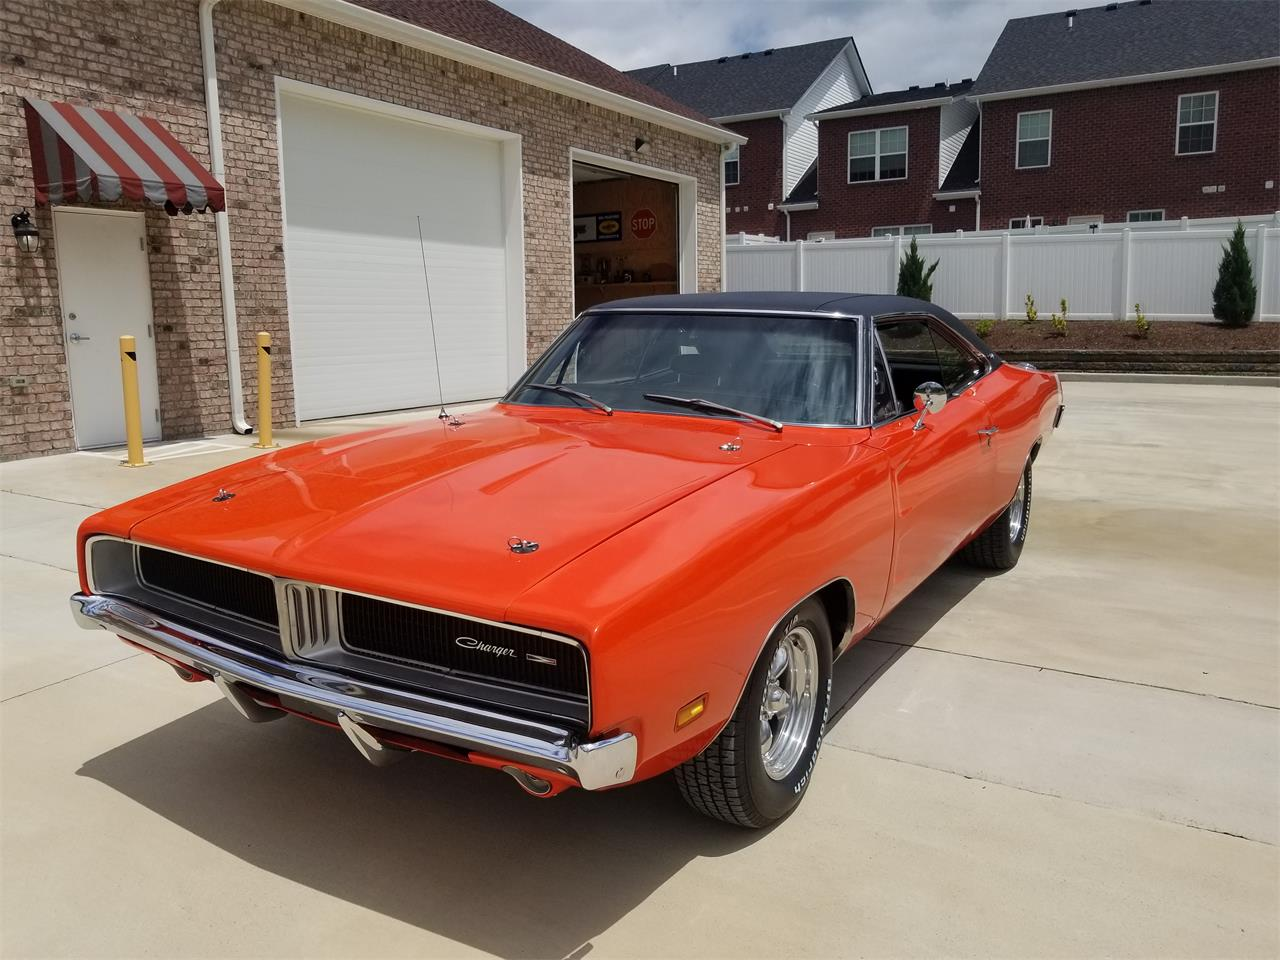 Large Picture of '69 Charger located in Tennessee - $47,500.00 - Q45J